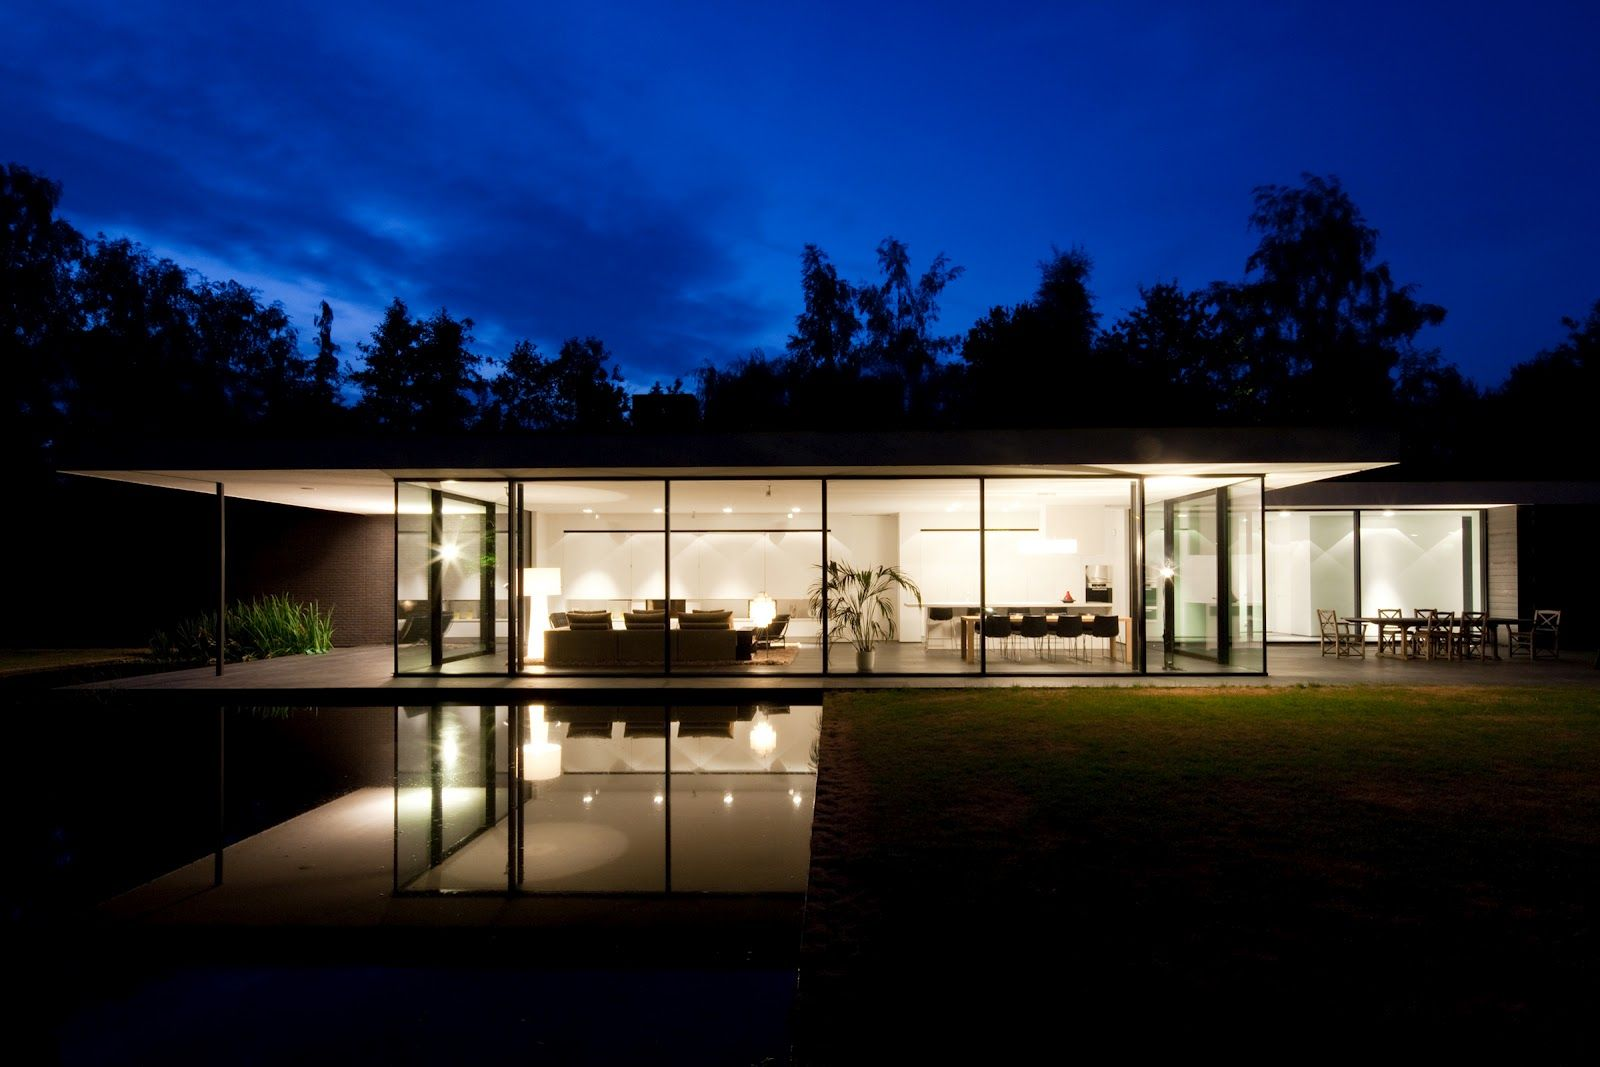 Modern Design: Ultra Modern Glass House rchitecture House ... - ^